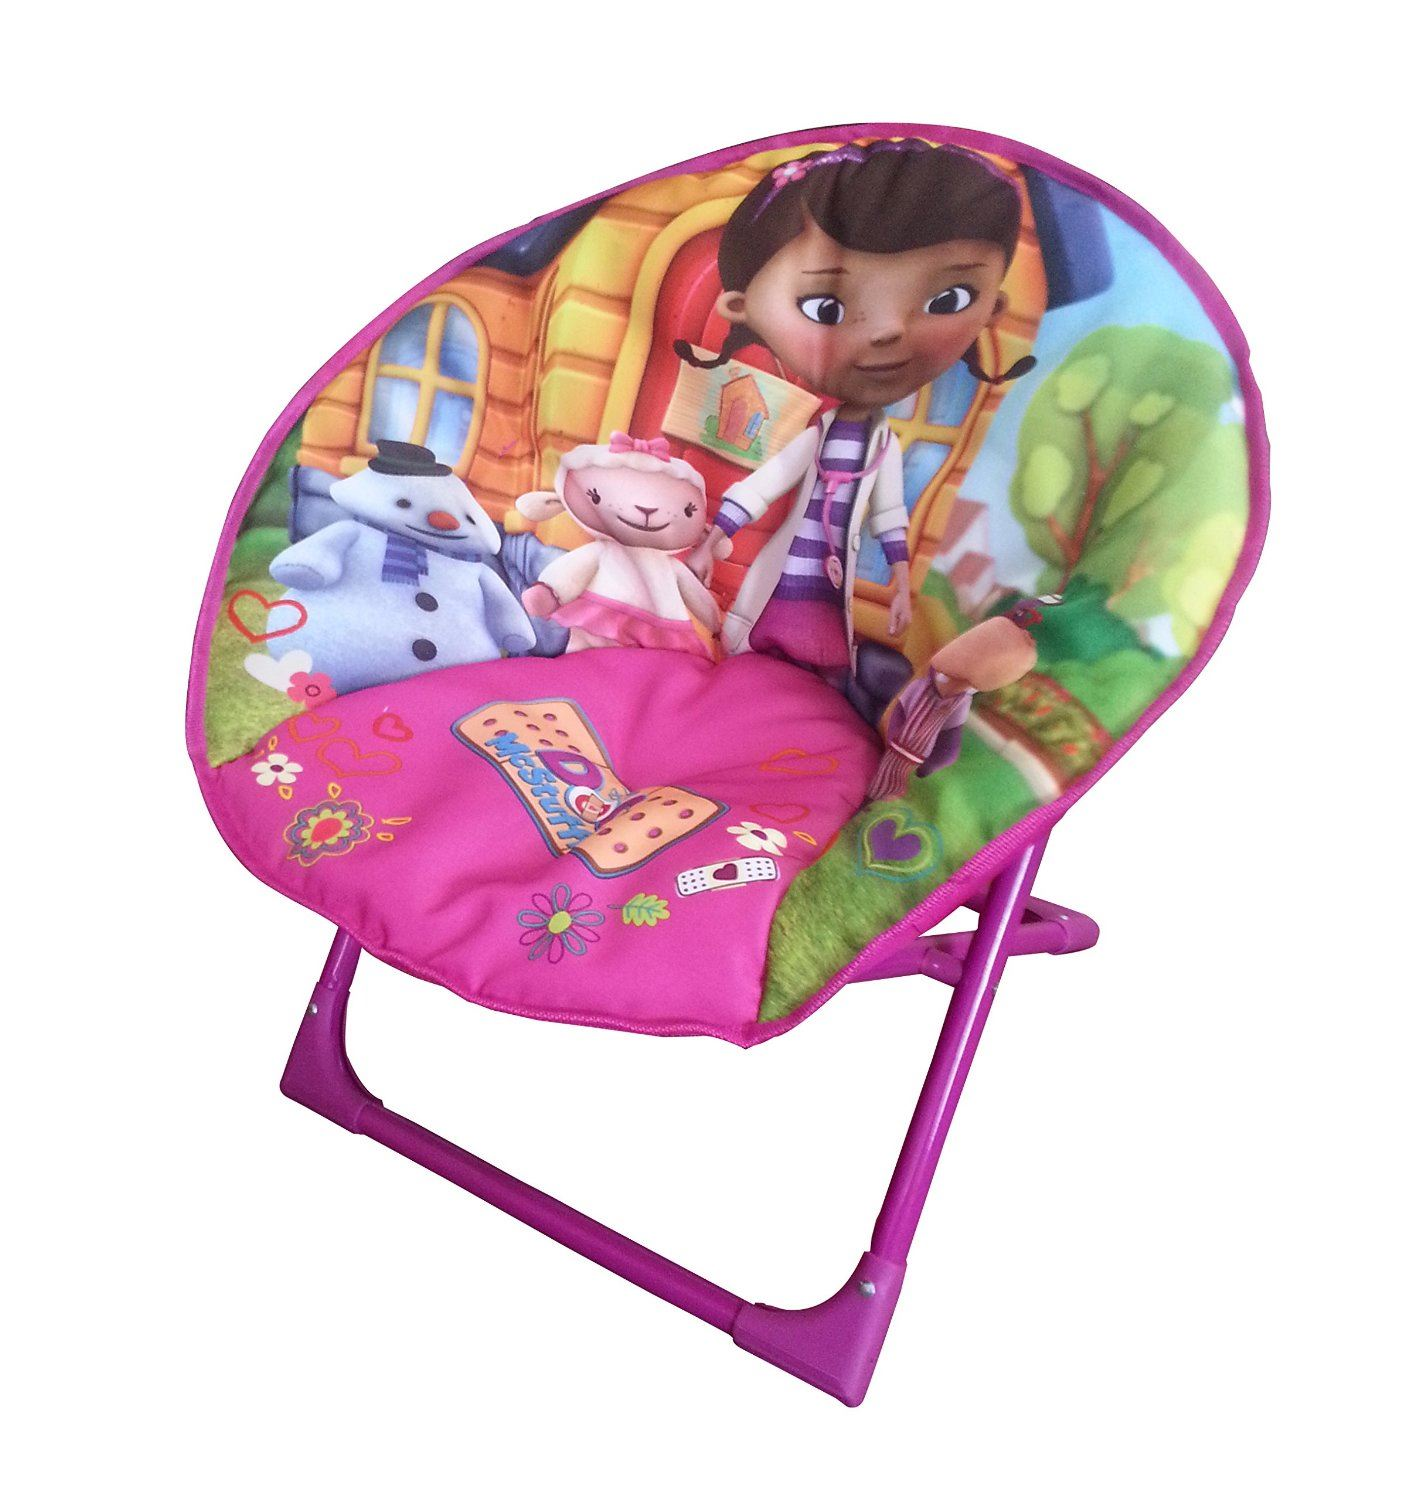 Toddler Soft Chairs Disney Moon Chair Different Models Folding Round Soft